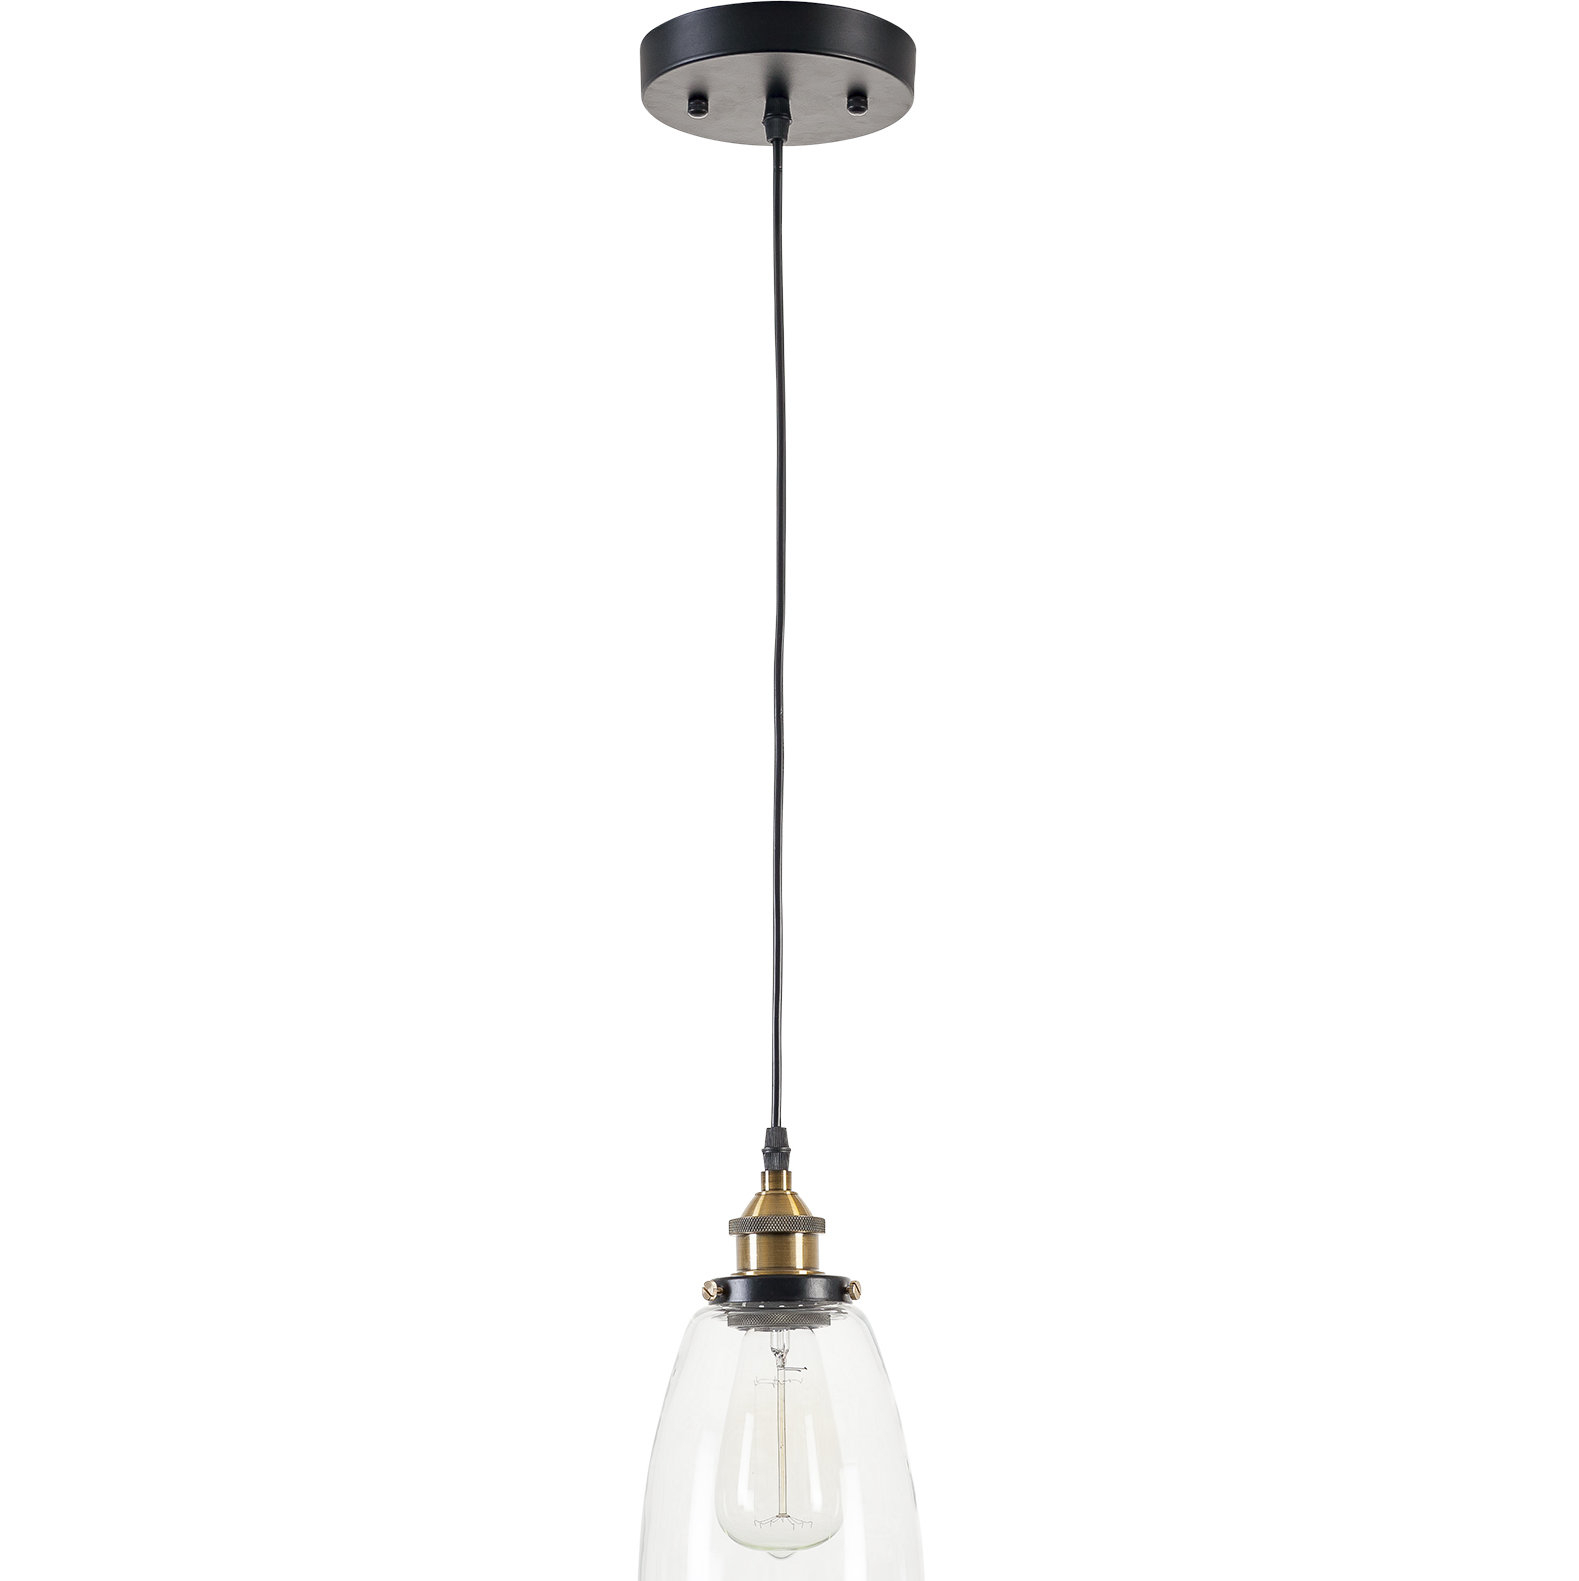 Iron Gate 1 Light Single Bell Pendant With Bodalla 1 Light Single Bell Pendants (View 23 of 30)